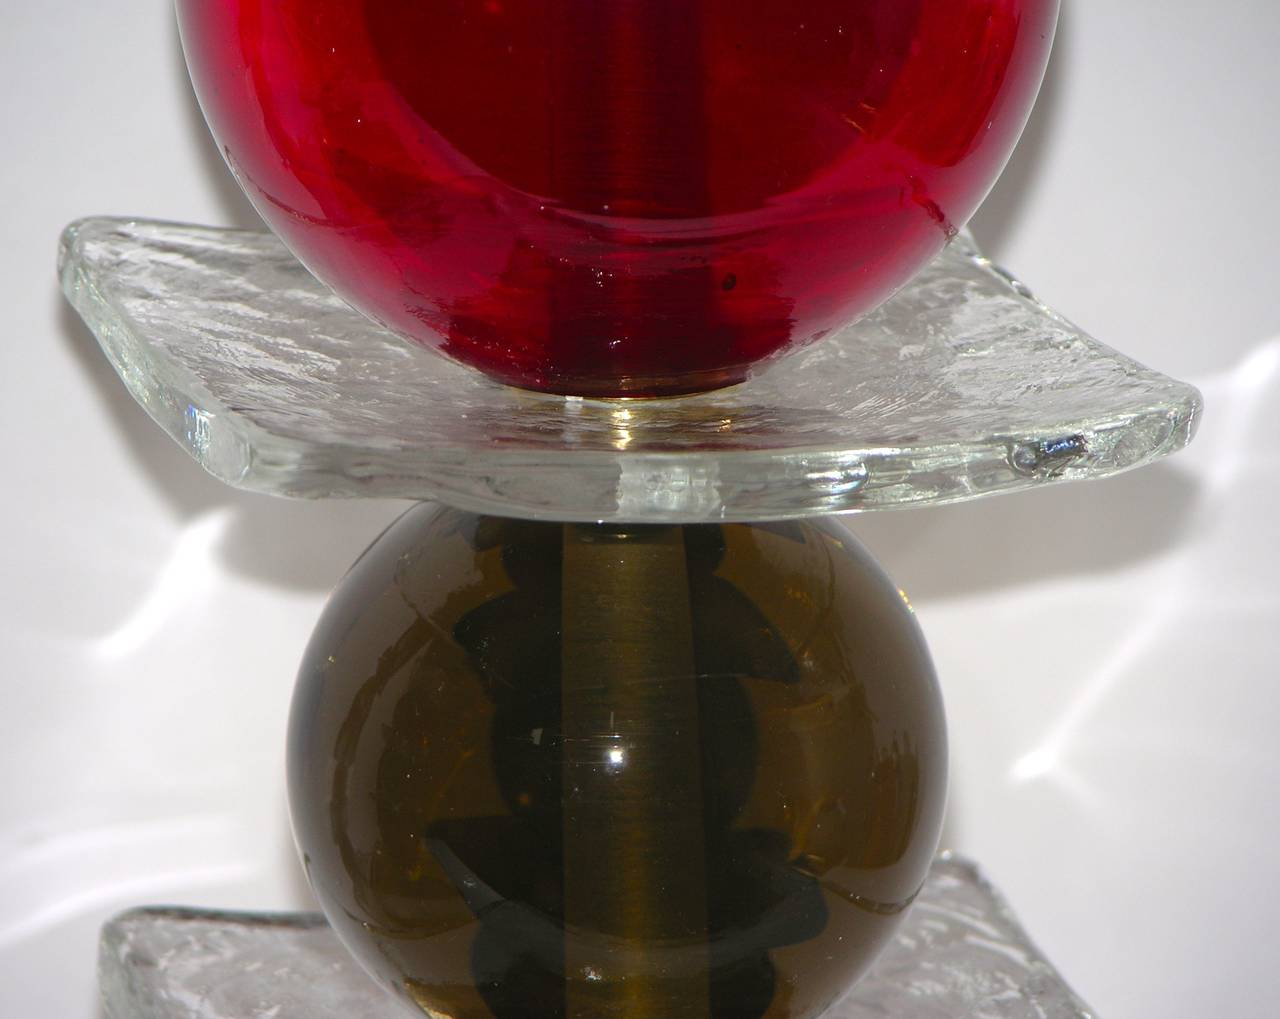 Italian Pair of Tulip Red Murano Glass Lamps, 1970s In Excellent Condition For Sale In New York, NY